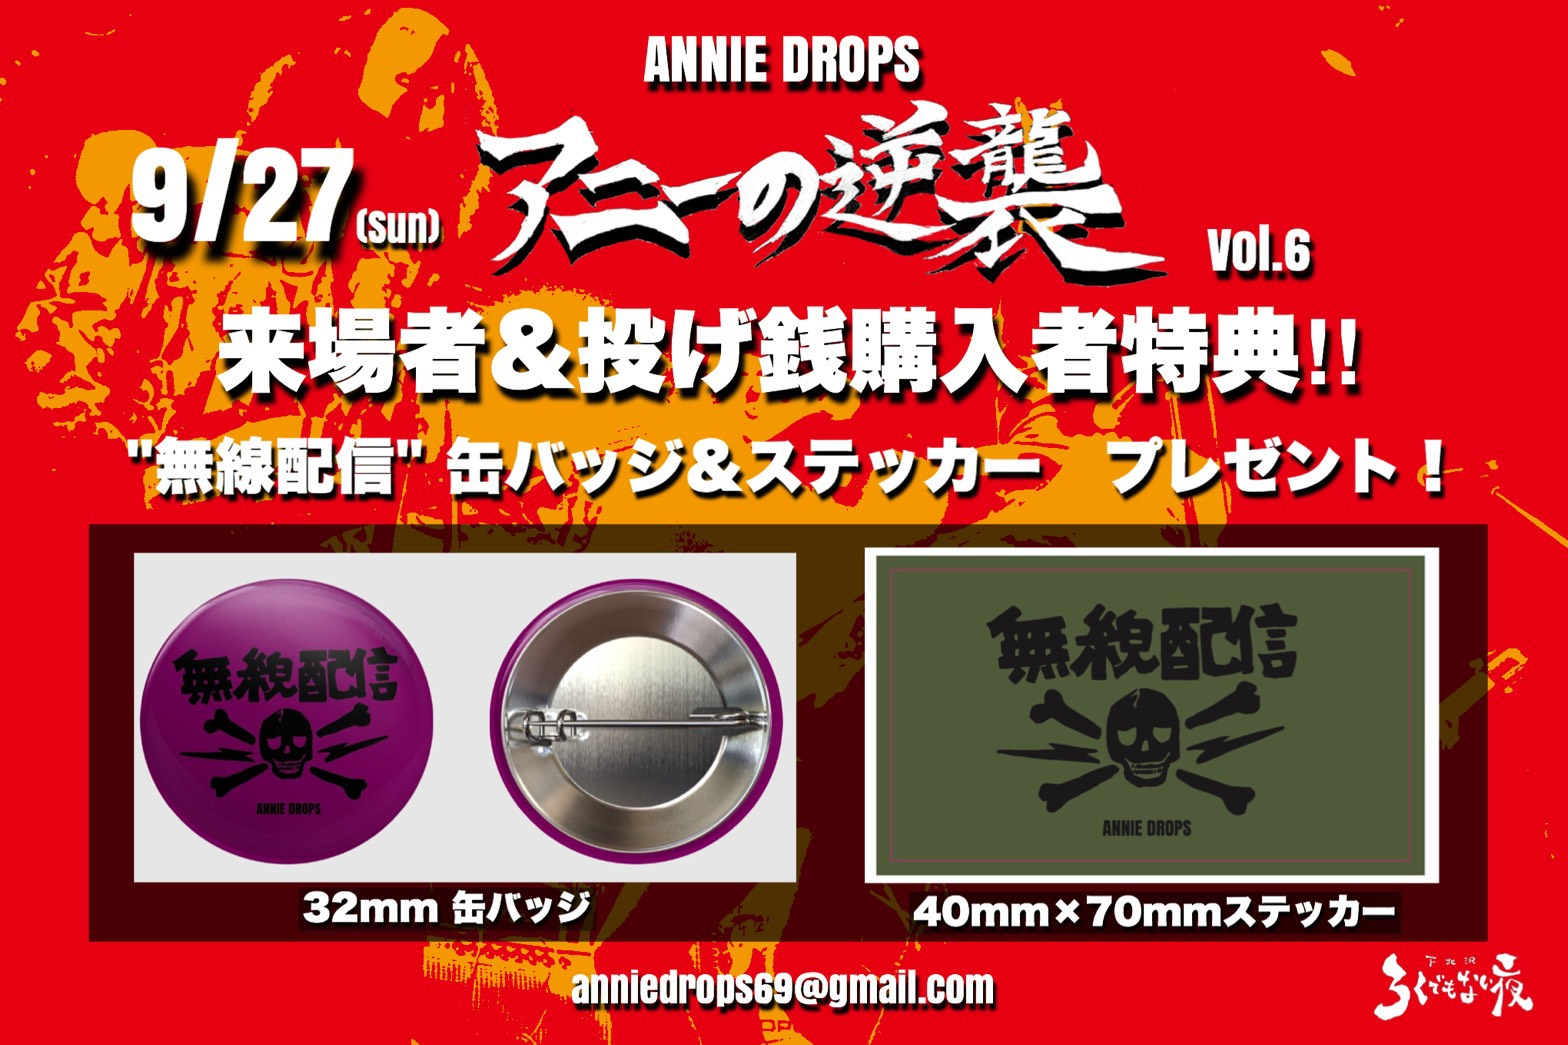 ANNIE DROPS presents 【アニーの逆襲 vol.6】